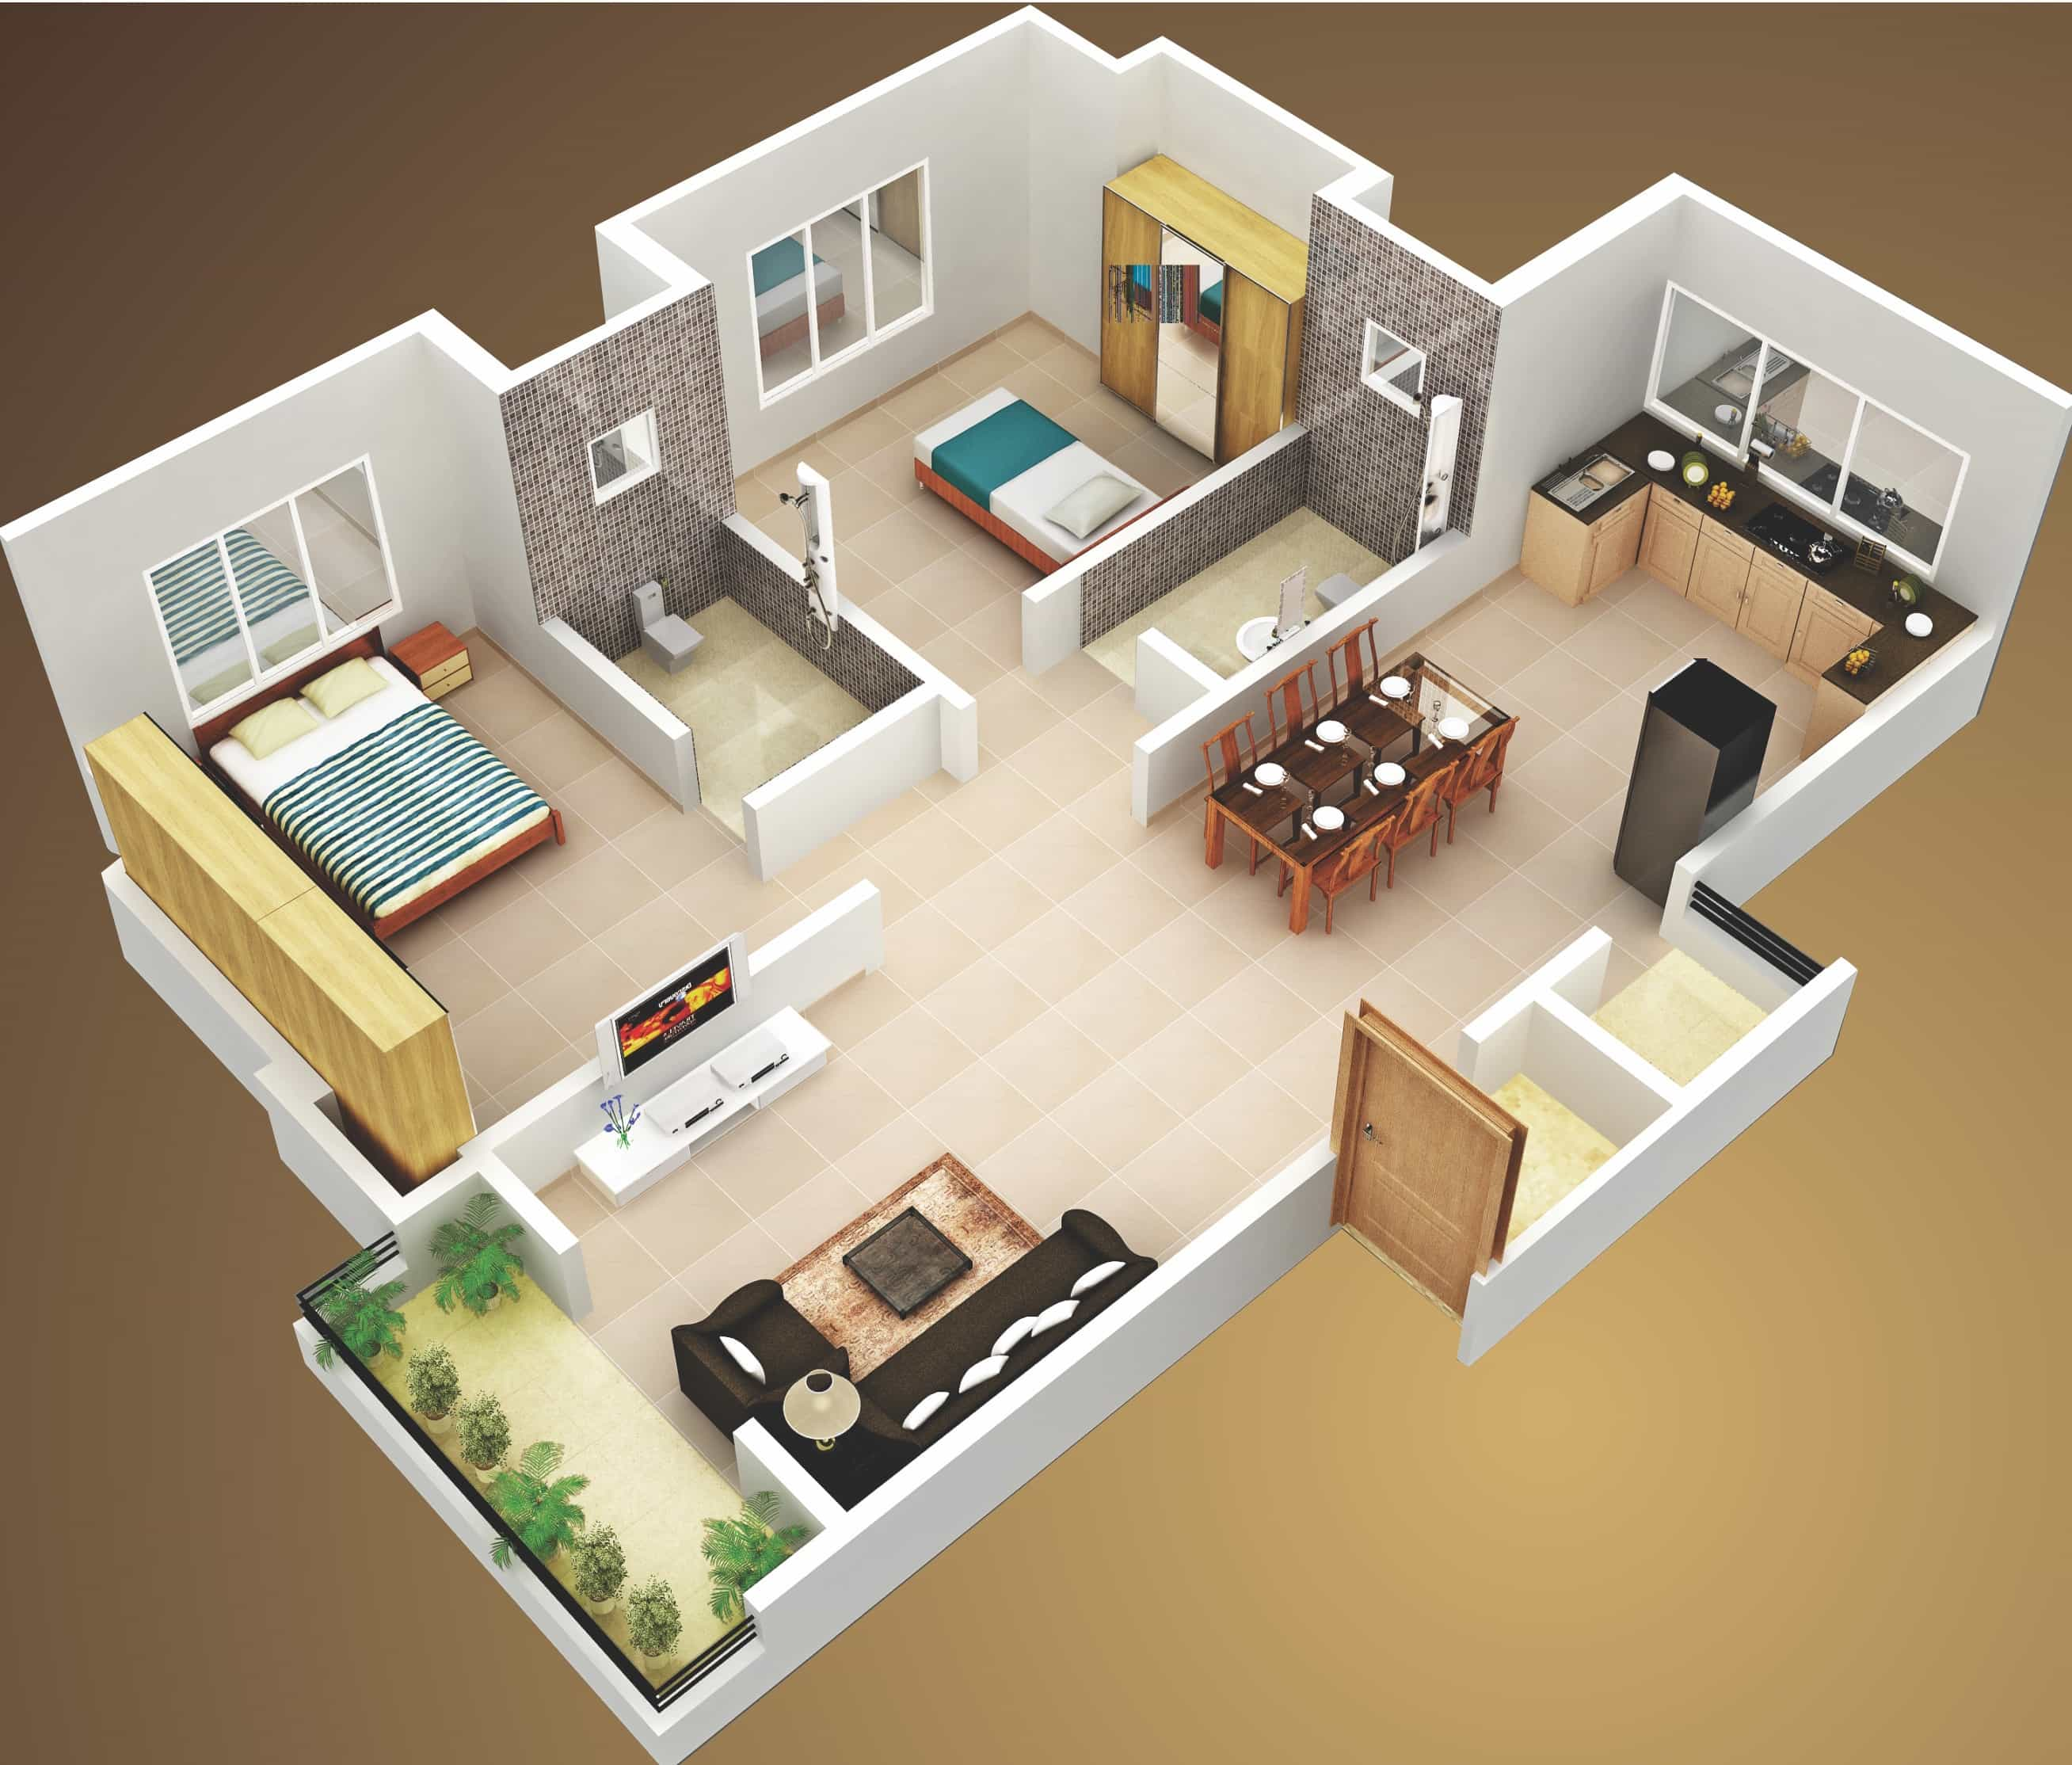 2 Bedroom With Single Bathroom Simple House Plans 3D Layout (Image 4 of 17)